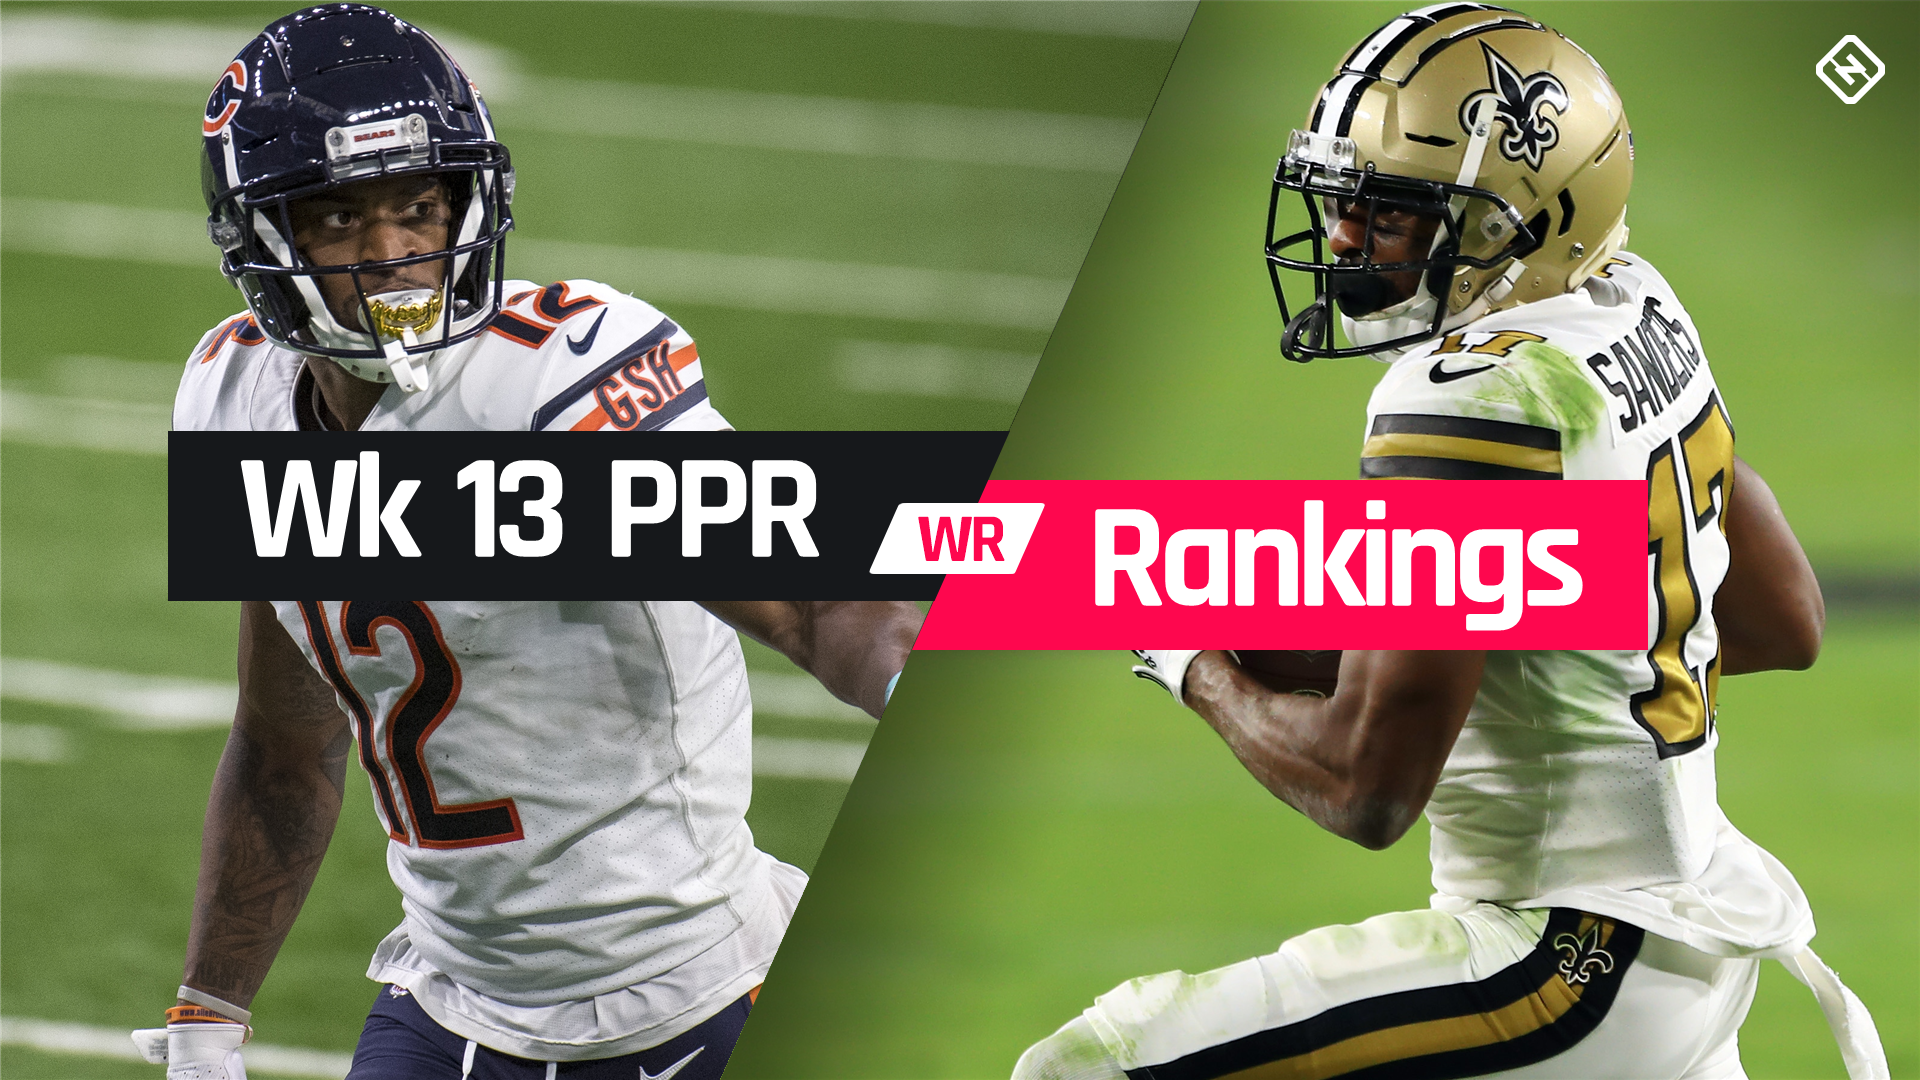 Week 13 Fantasy WR PPR Rankings: Must-starts, sleepers, potential busts